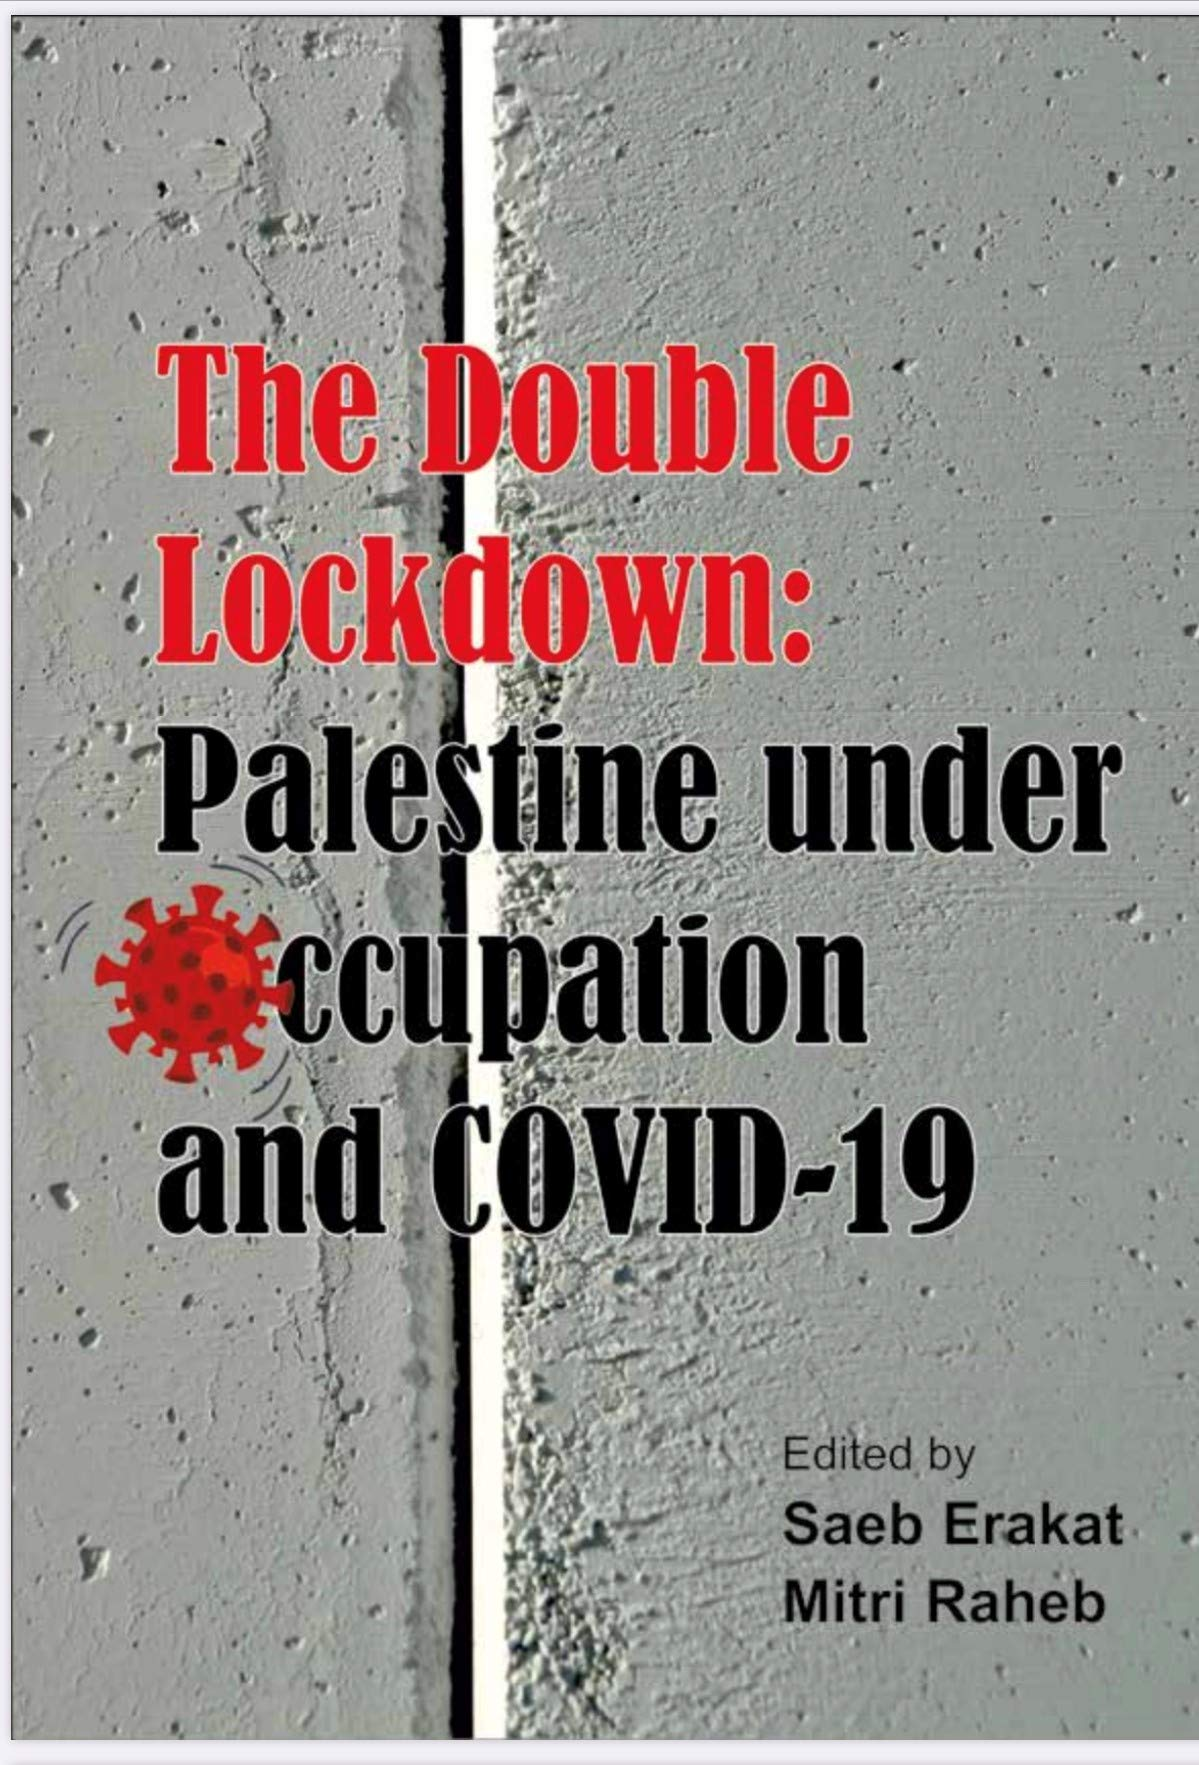 The Double Lockdown: Palestine under Occupation and COVID-19